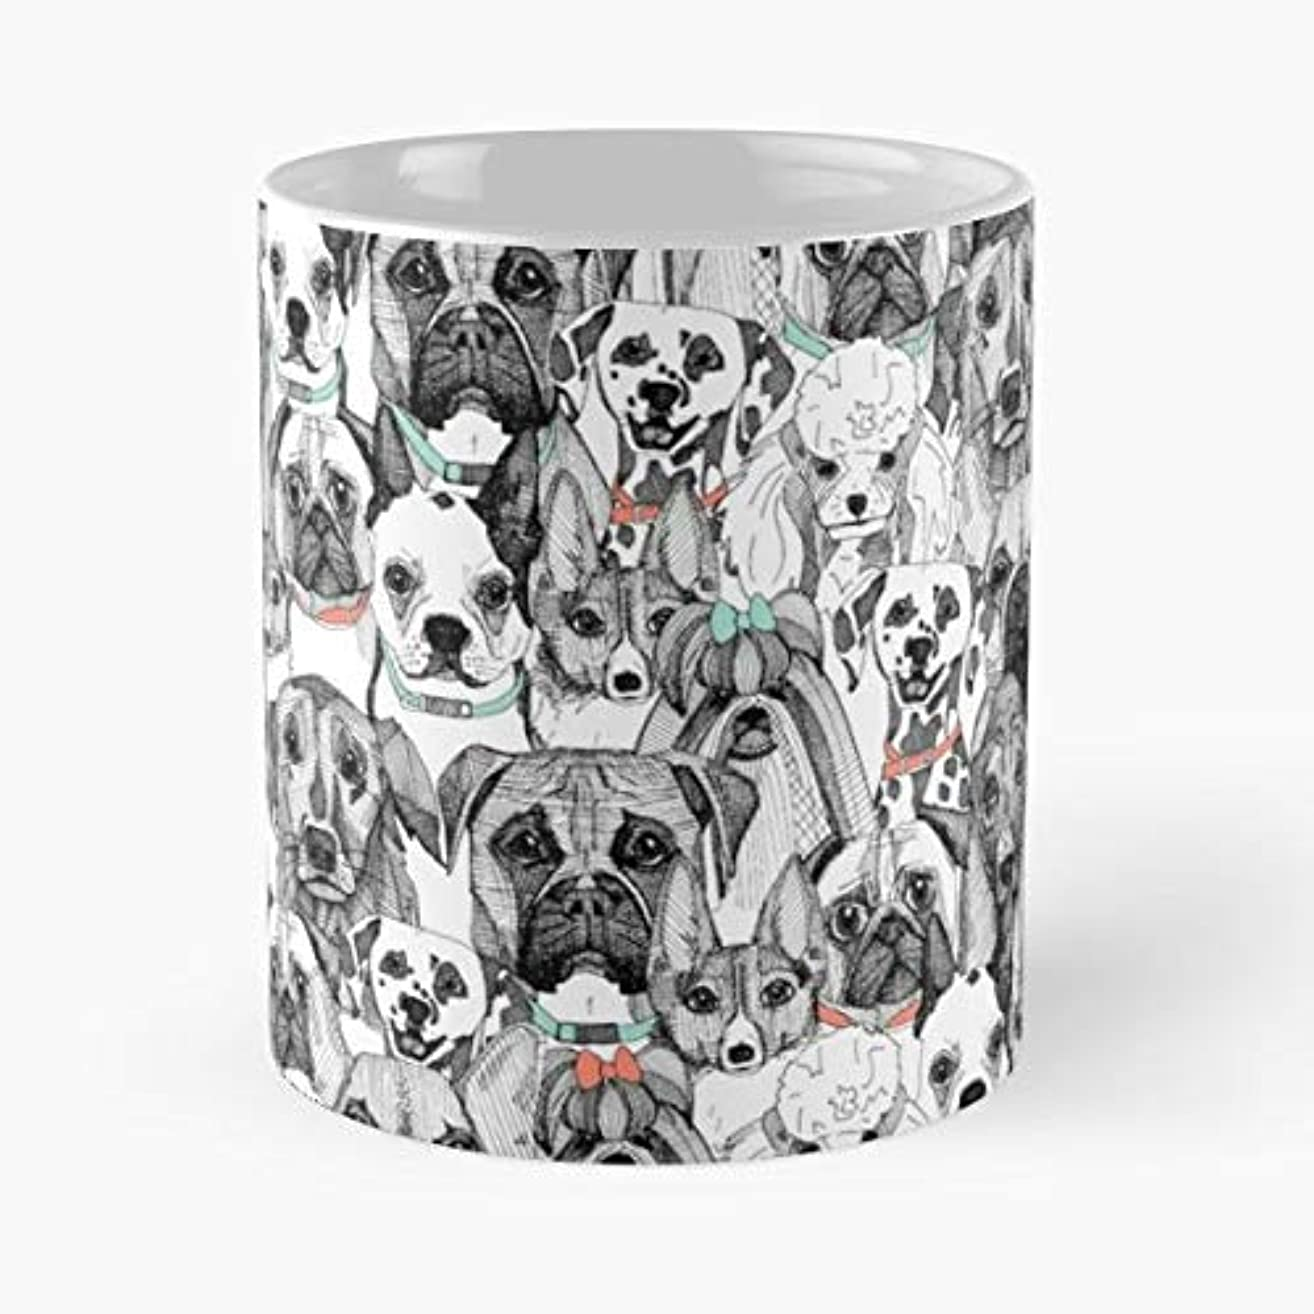 Basset Terrier Boxer Corgi - Funny Gifts For Men And Women Gift Coffee Mug Tea Cup White 11 Oz The Best Gift Holidays.